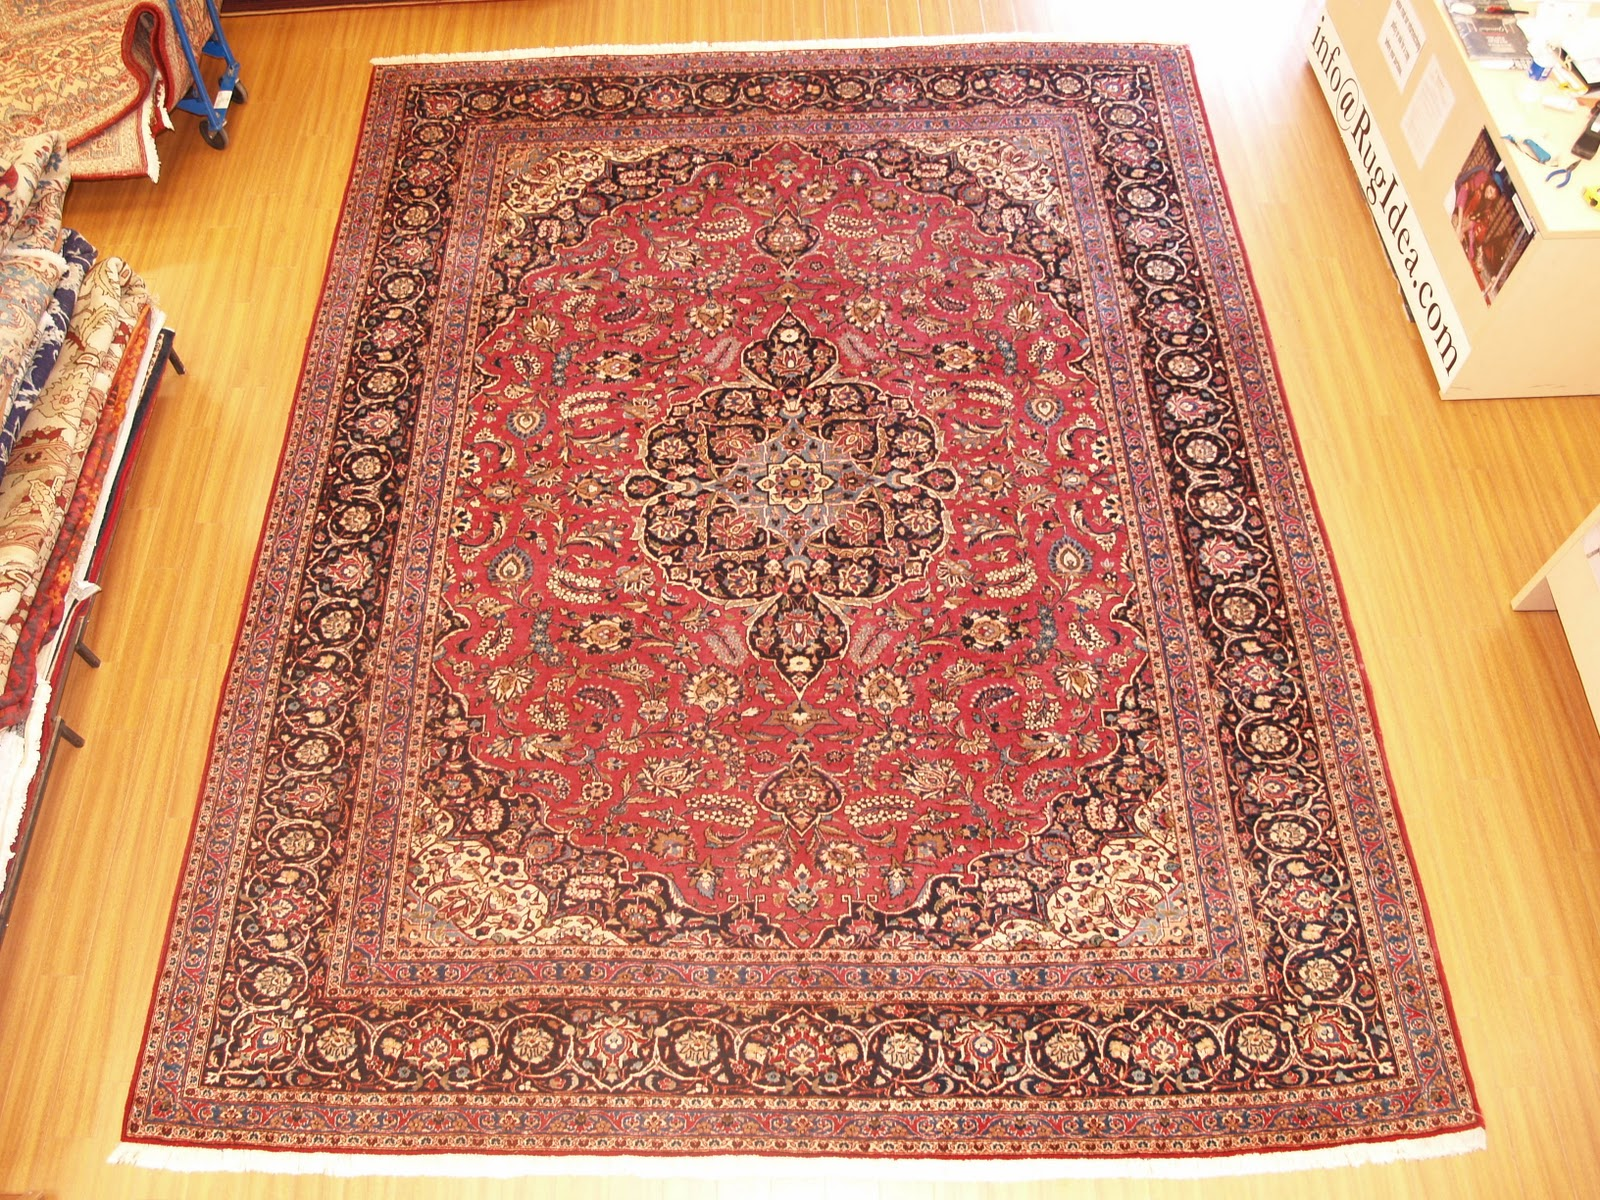 rugknots colors depth red medium a processes of pages rugs rug patterns and oriental color types have locations ikat